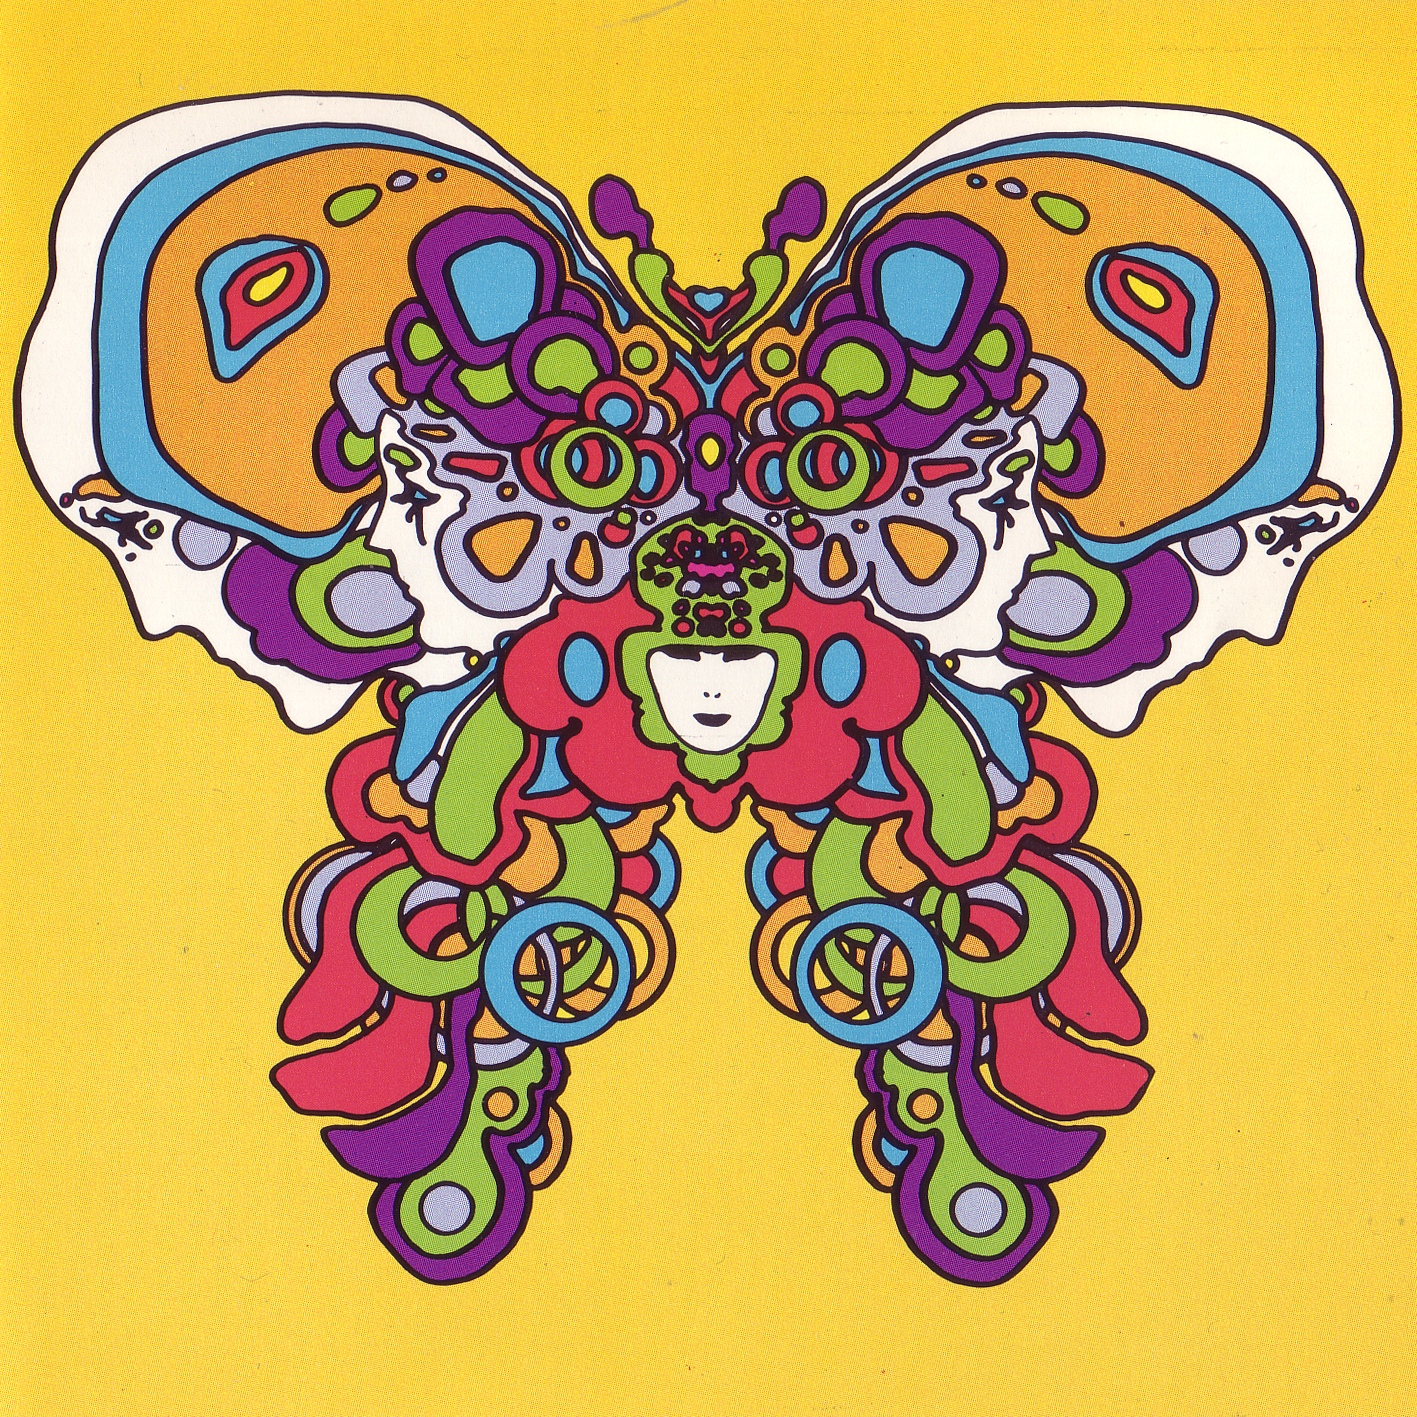 Pinturas Hippies Illustration By Peter Max 1970 Hippie Pinterest